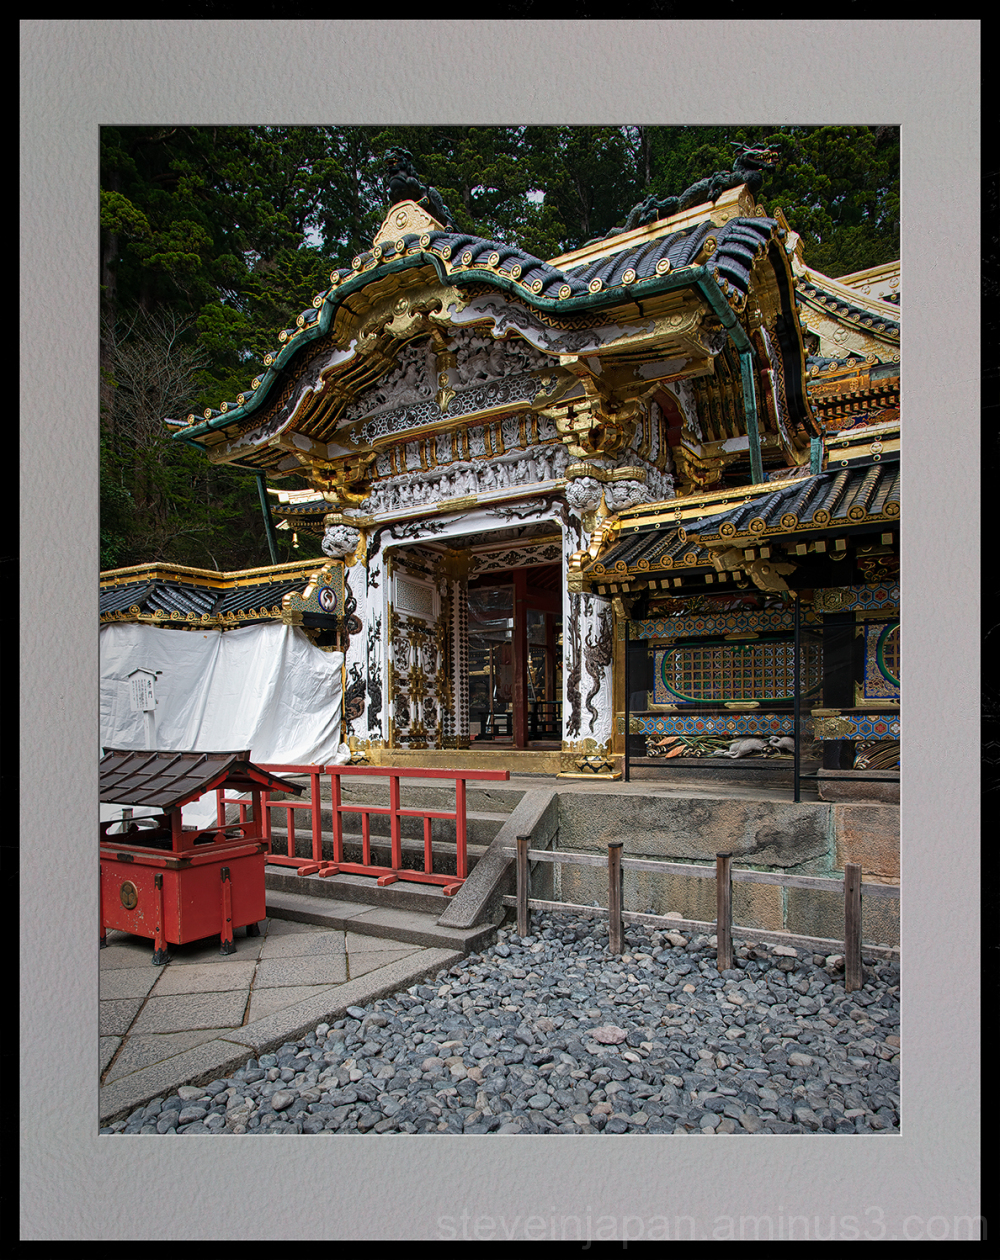 Toshogu Shrine in Nikko, Japan.